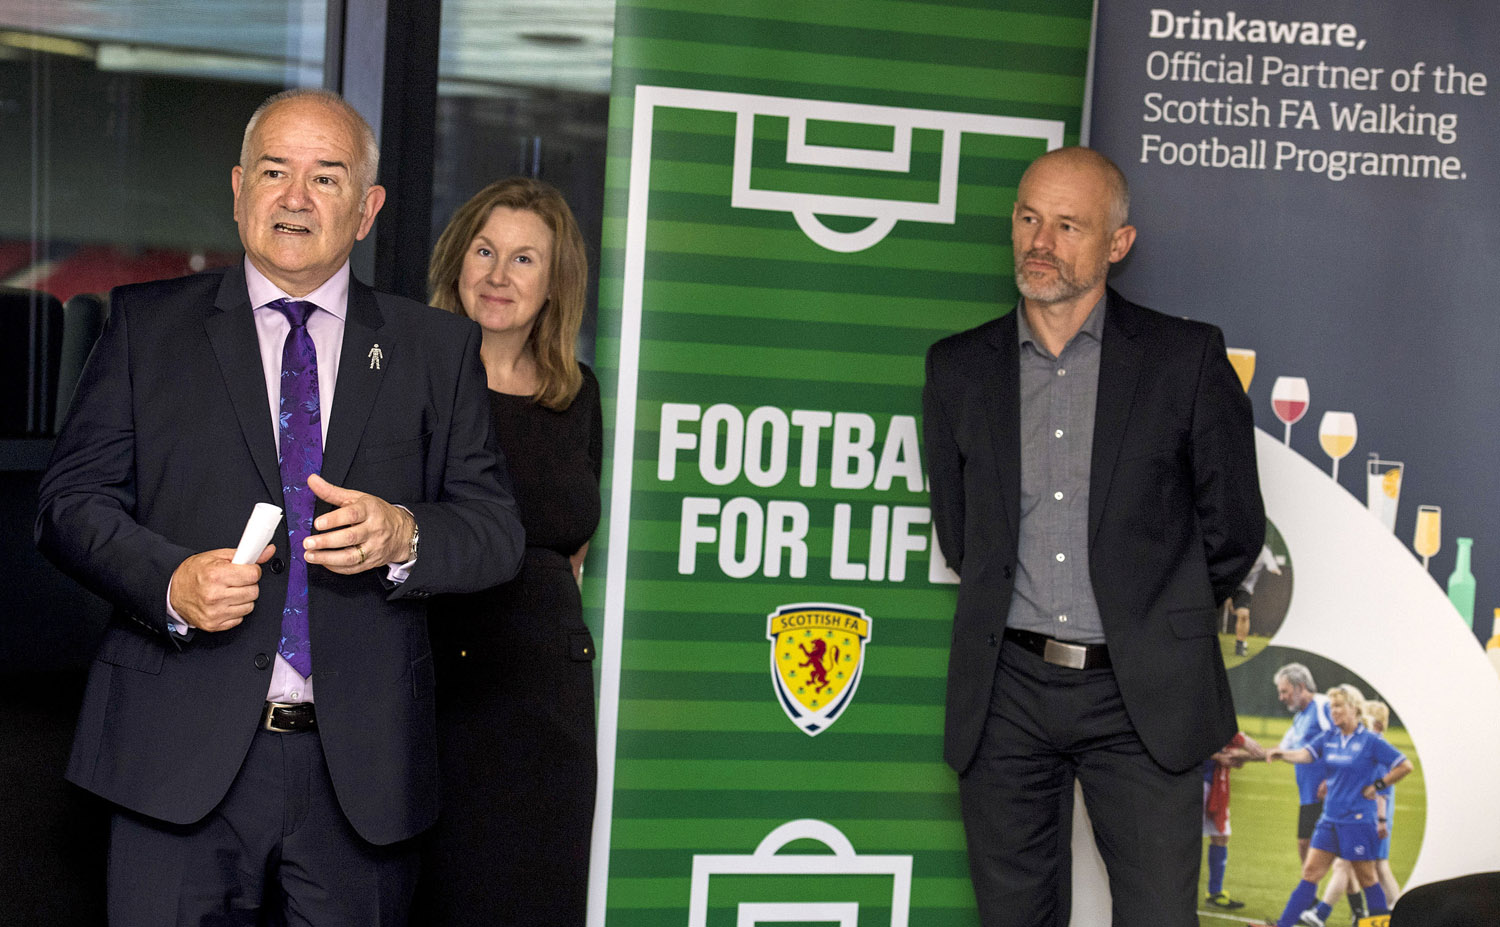 FOOTBALL FOR LIFE  l-r Gary McLaughlin, Elaine Hindal and Andy Gould at the launch